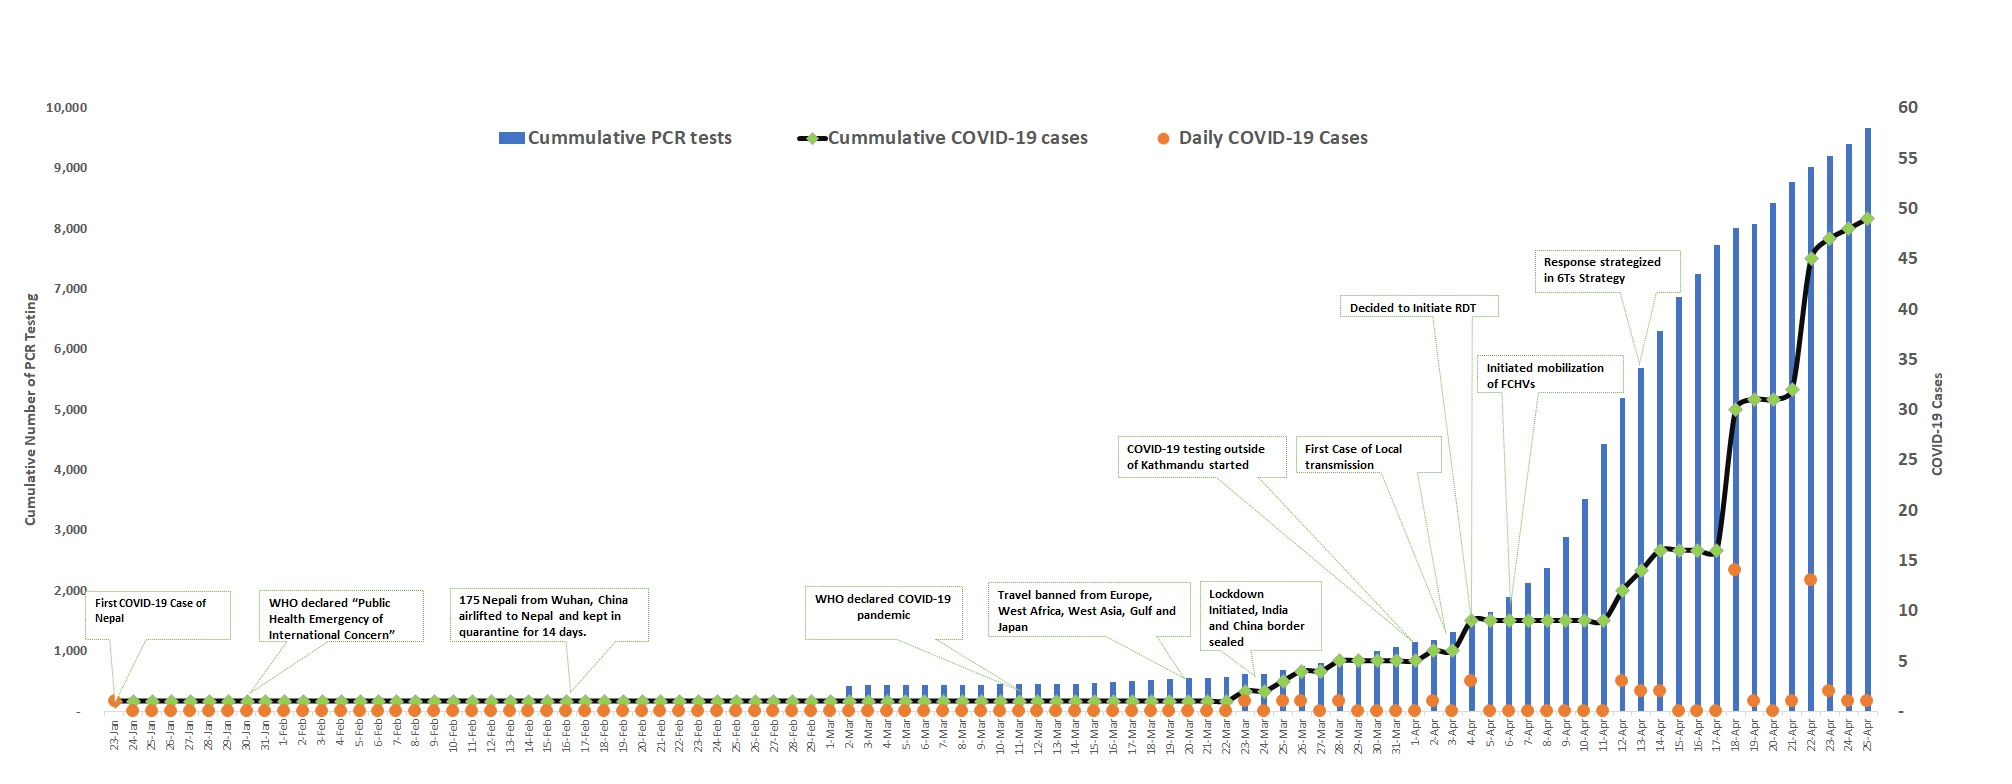 Figure 1: Main Interventions and COVID-19 cases through PCR Test (updated as of April 25, 2020)